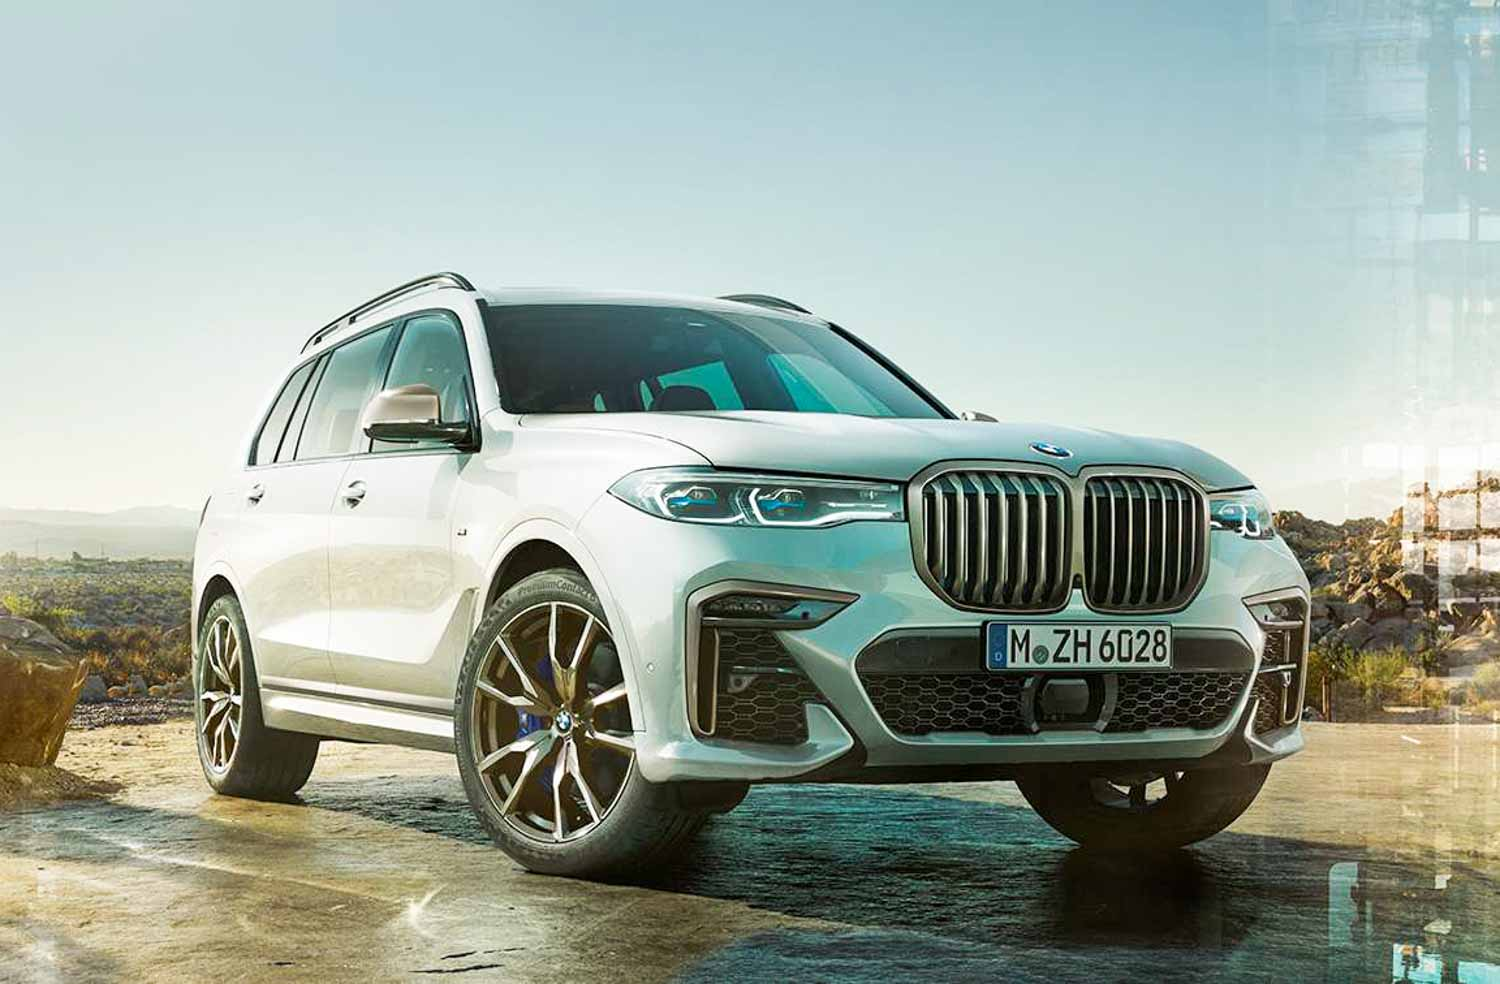 Range-Topping BMW X7 M50d Launched, Priced At Rs 1.63 Crore